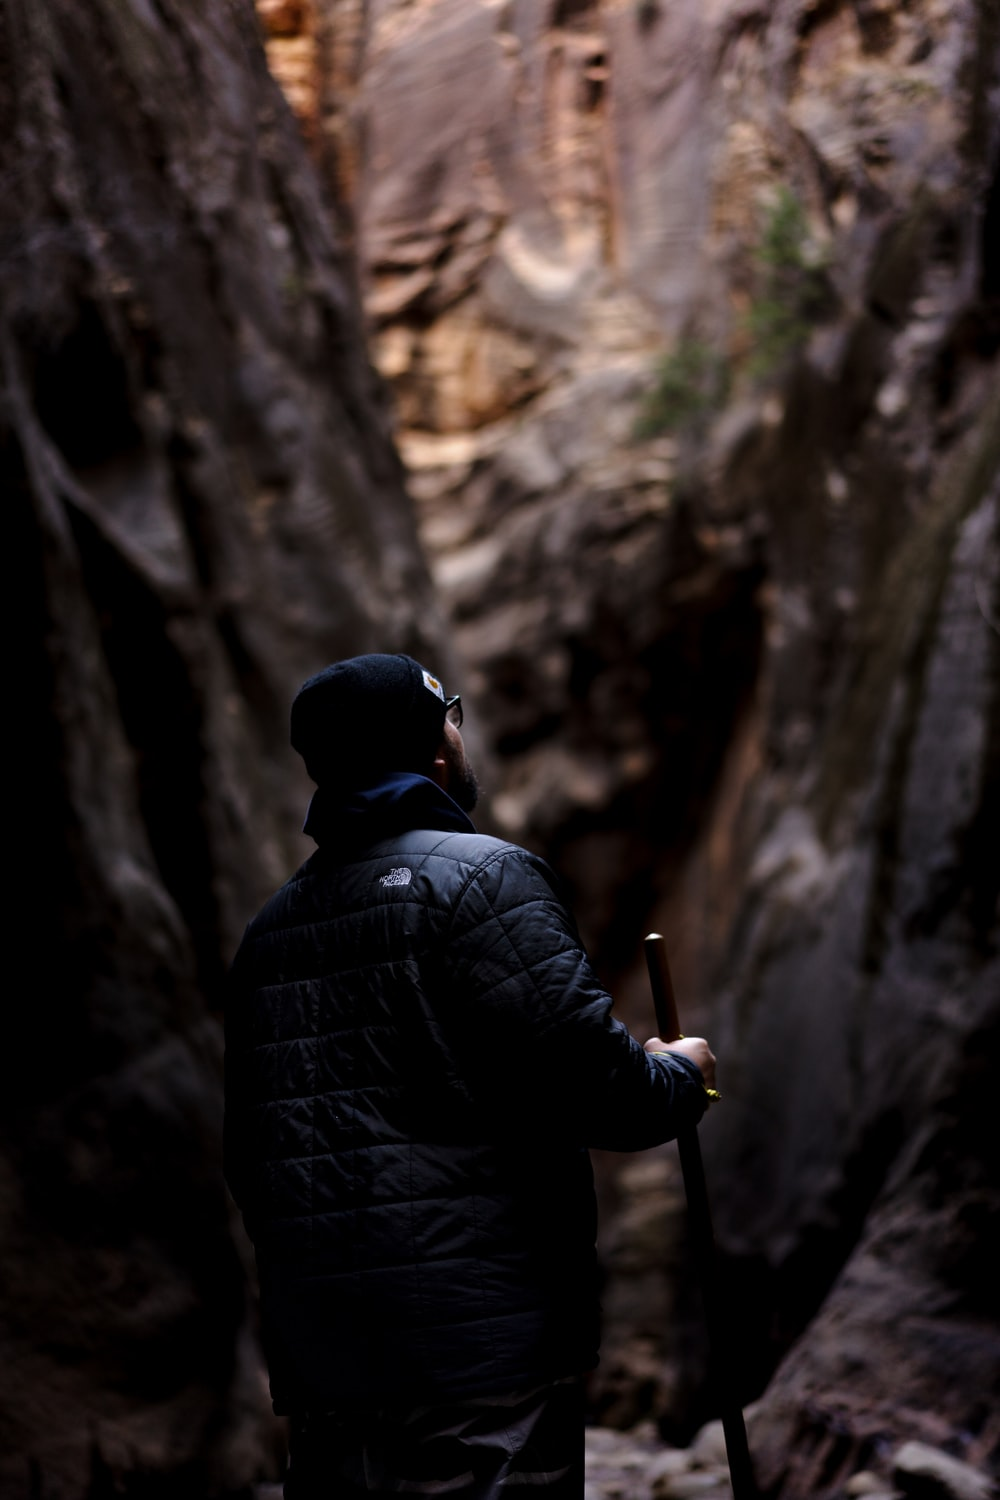 man wearing black jacket holding stick while standing near cave during daytime